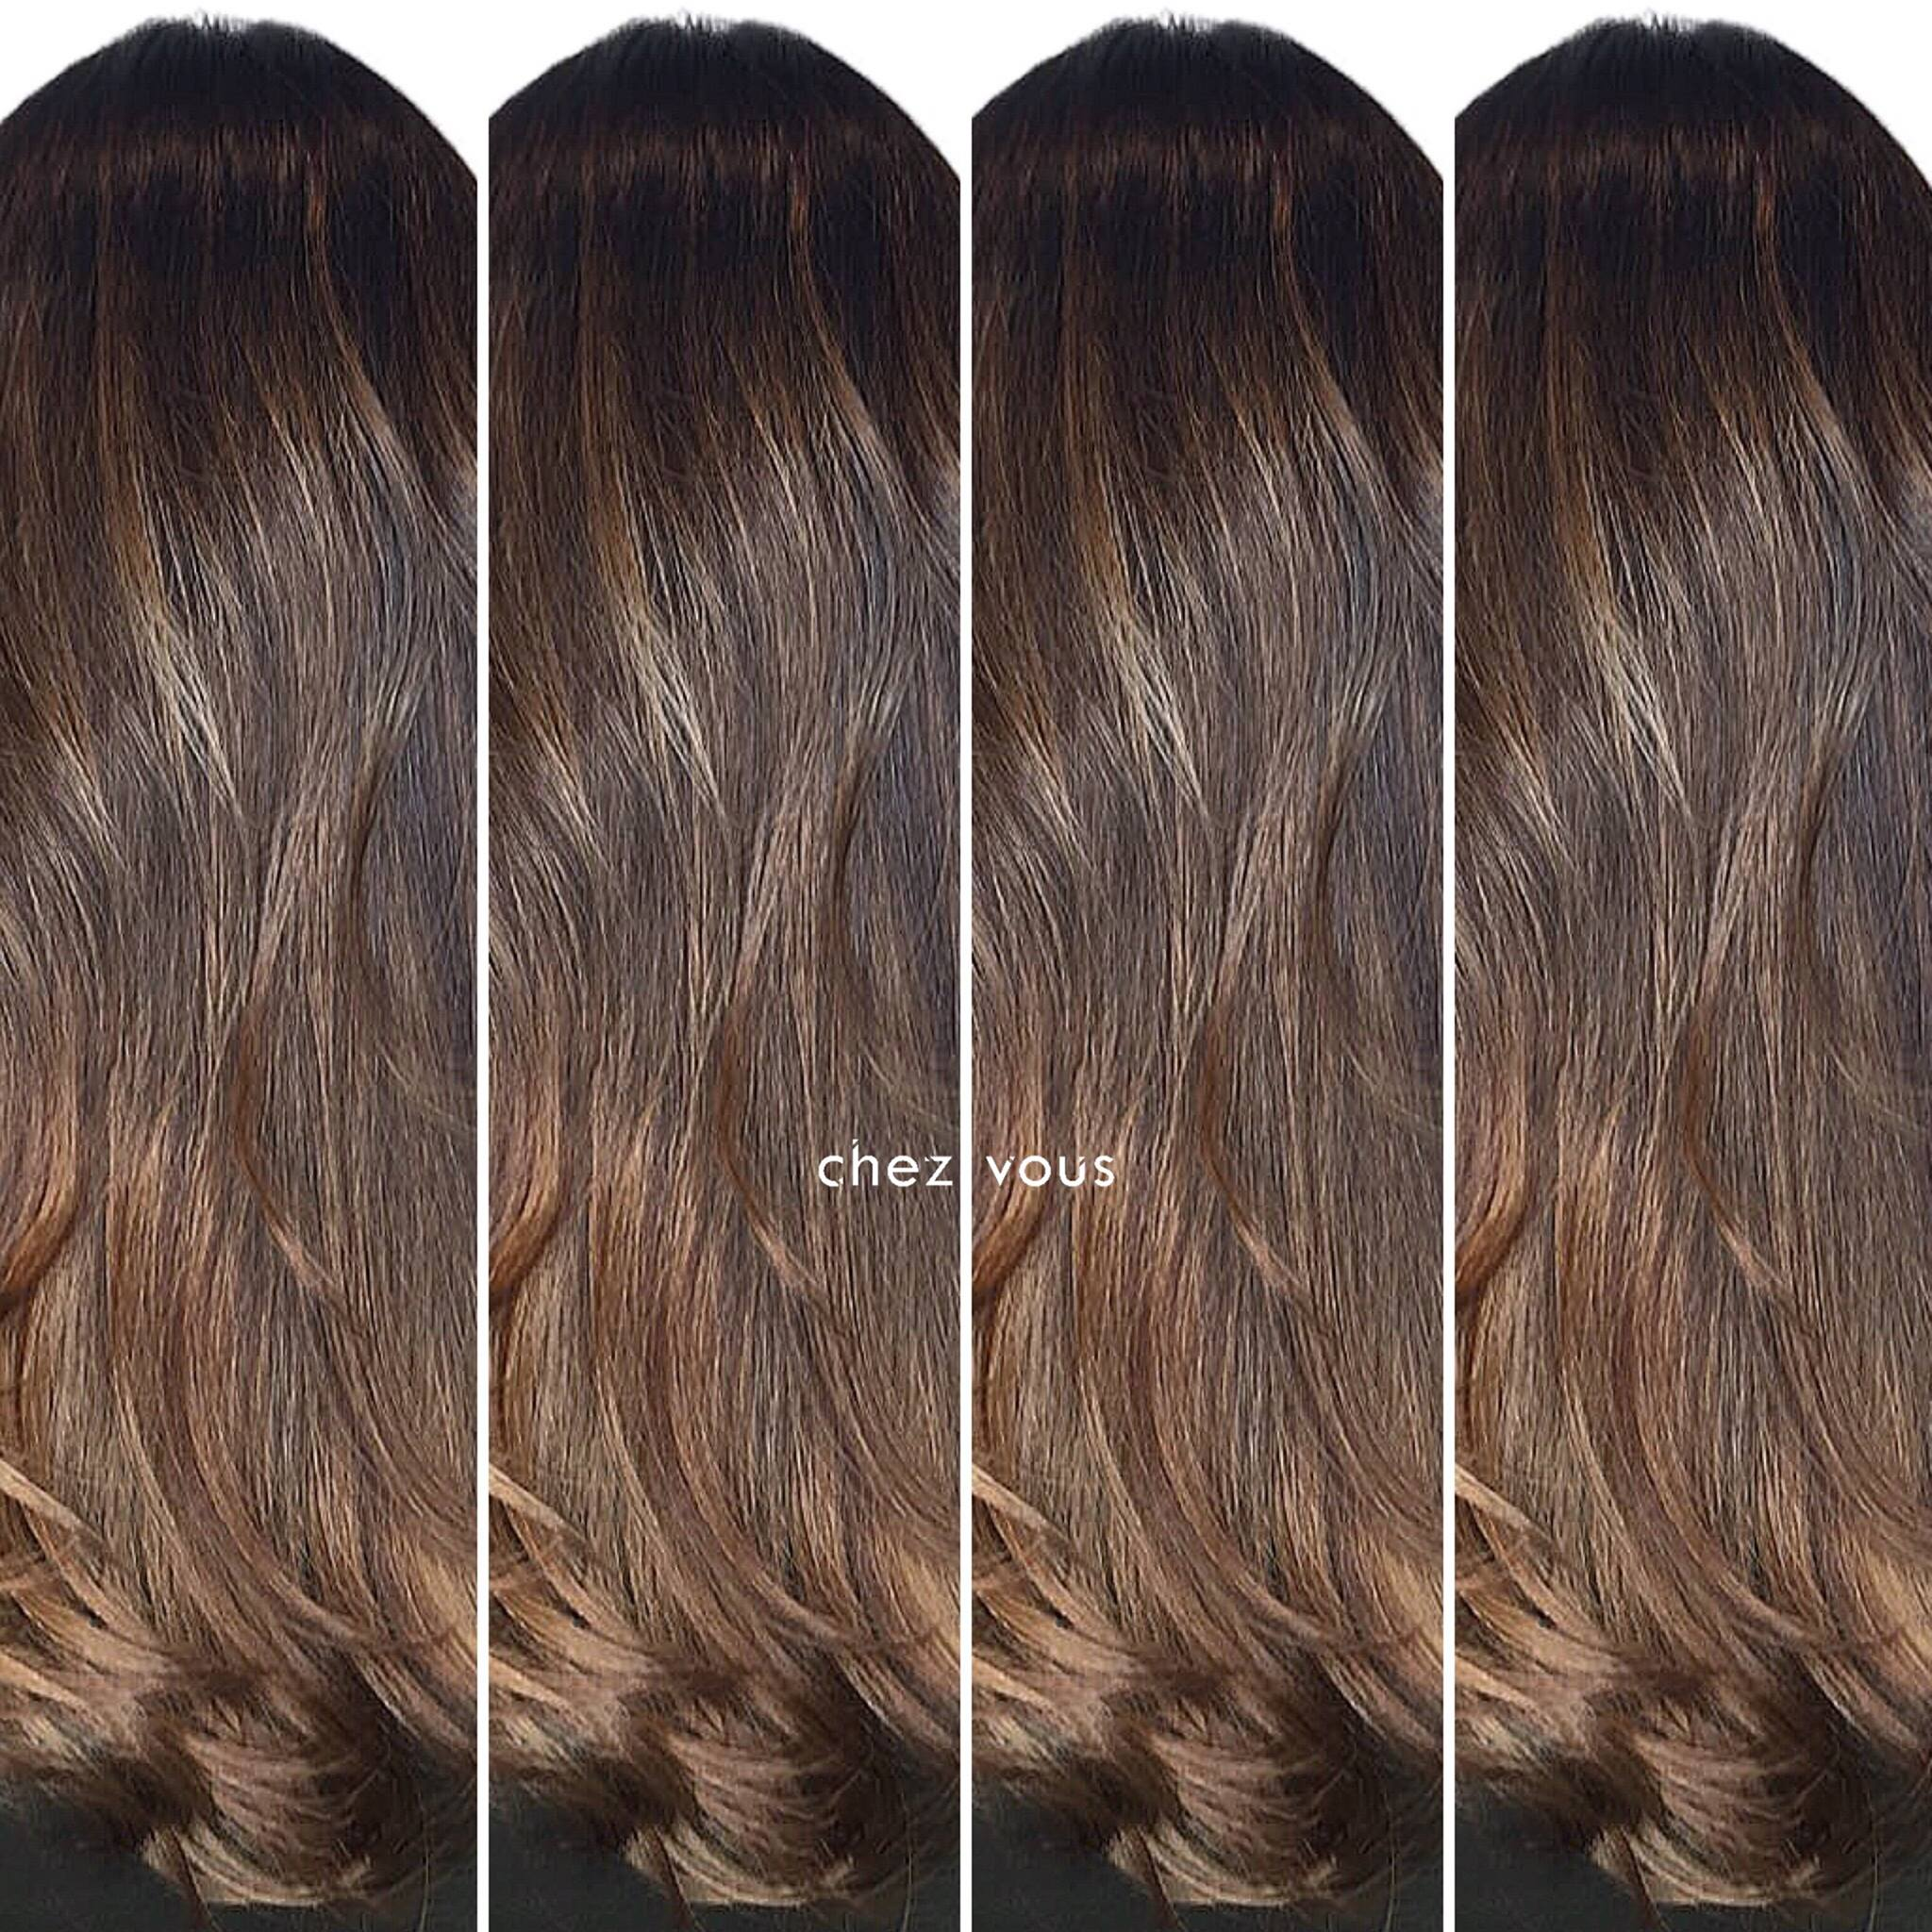 Caramel Brown Hair Colour for Work by Chez Vous